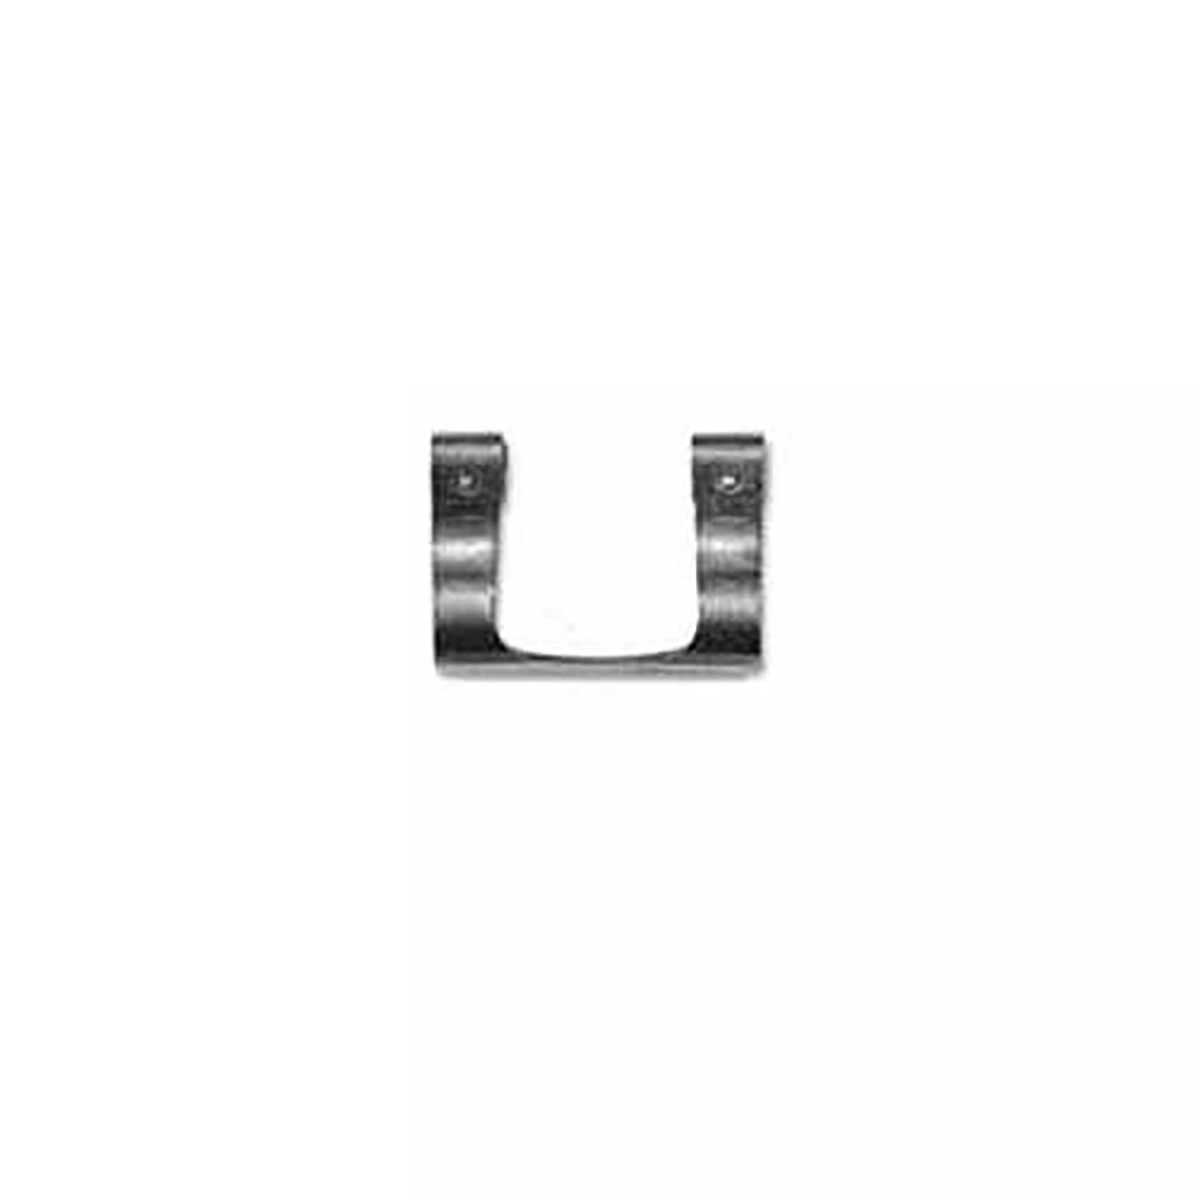 Tension Spring For Oster A5 Blades